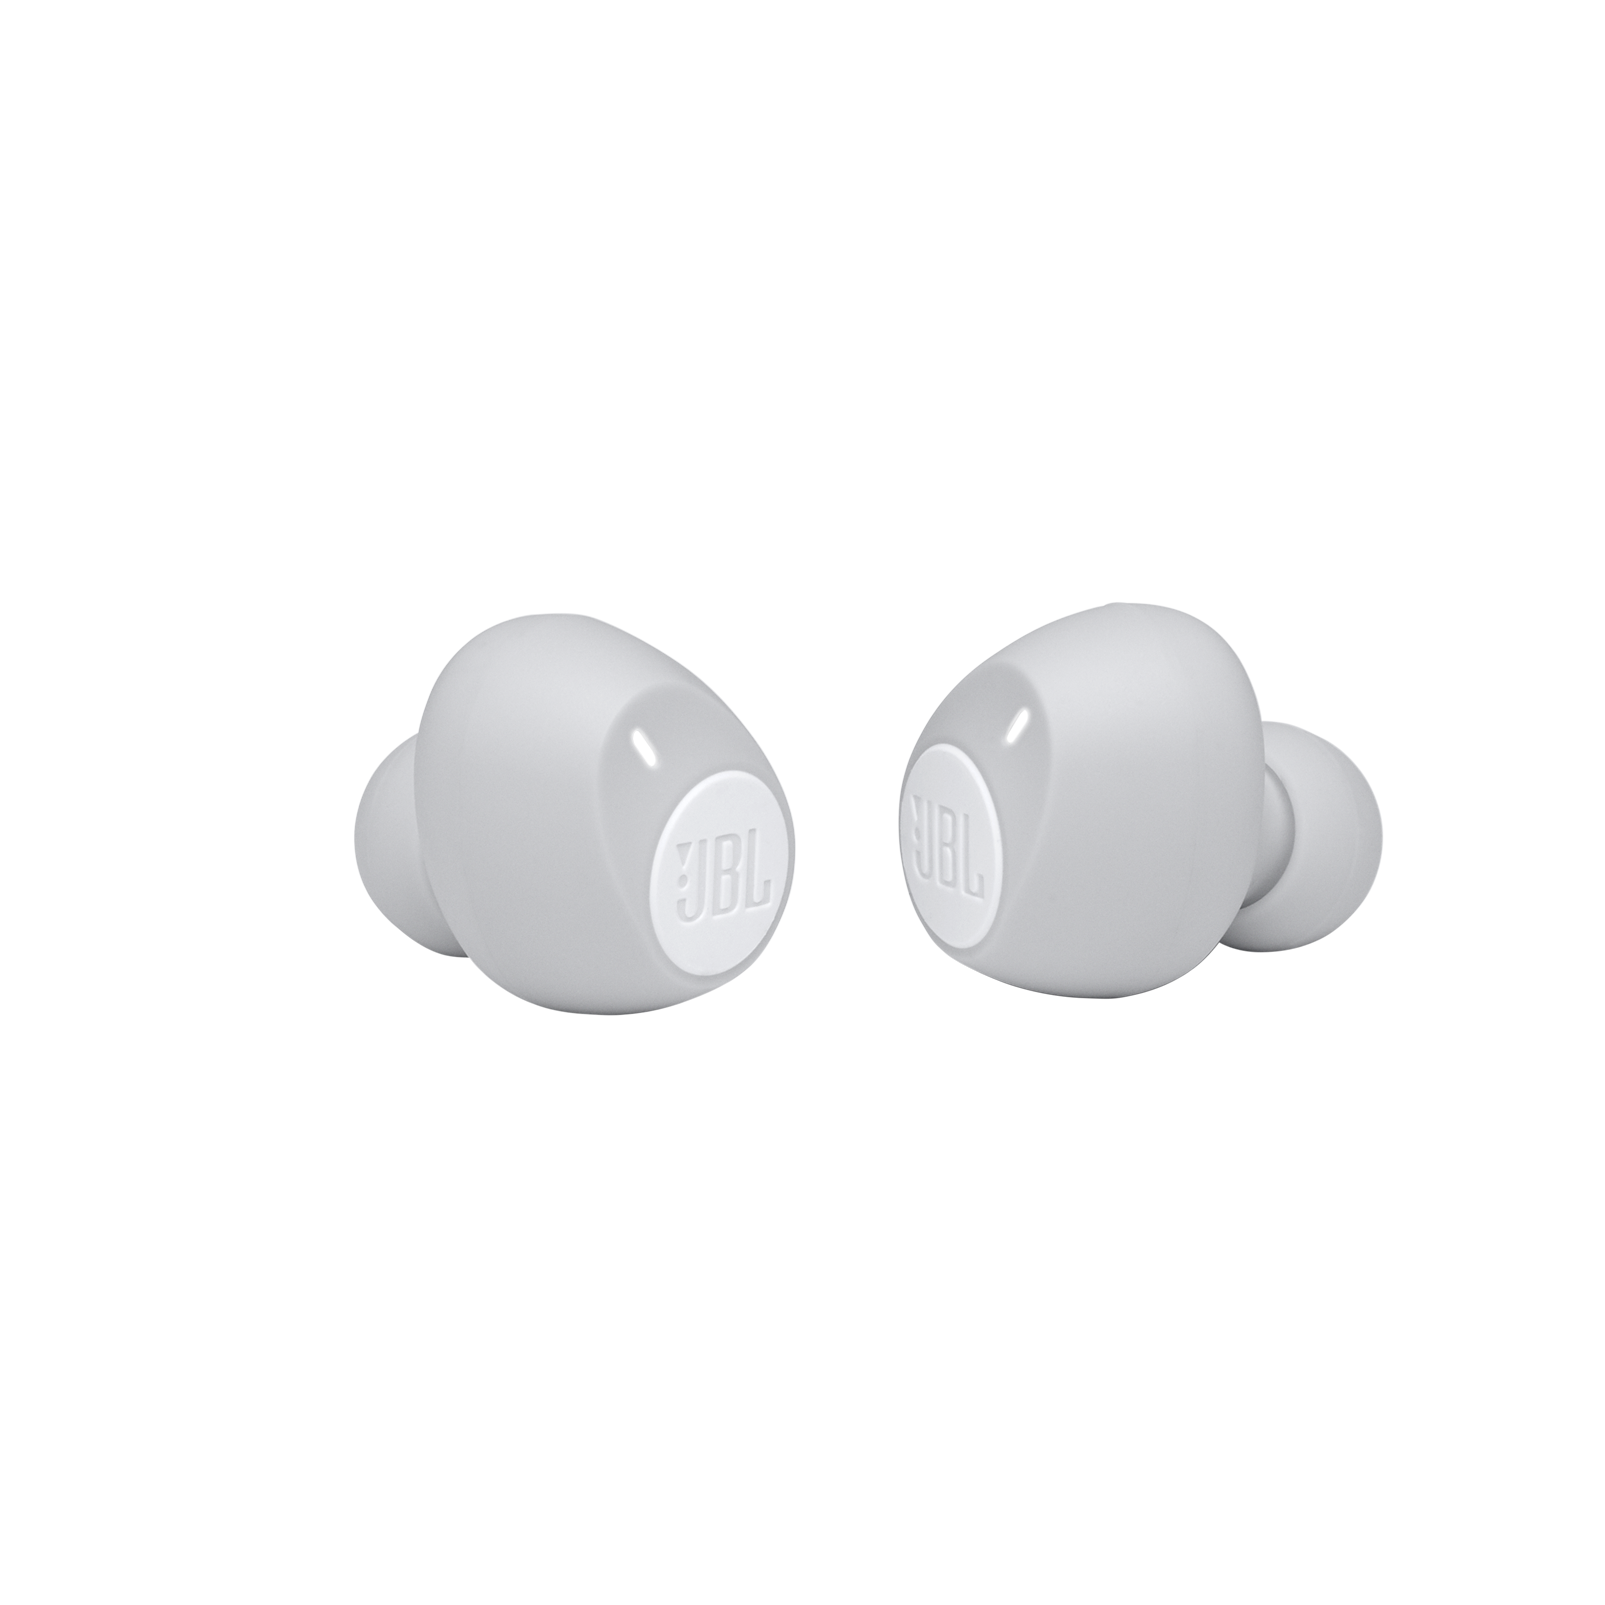 JBL Tune 115TWS - White - True wireless earbuds - Detailshot 1